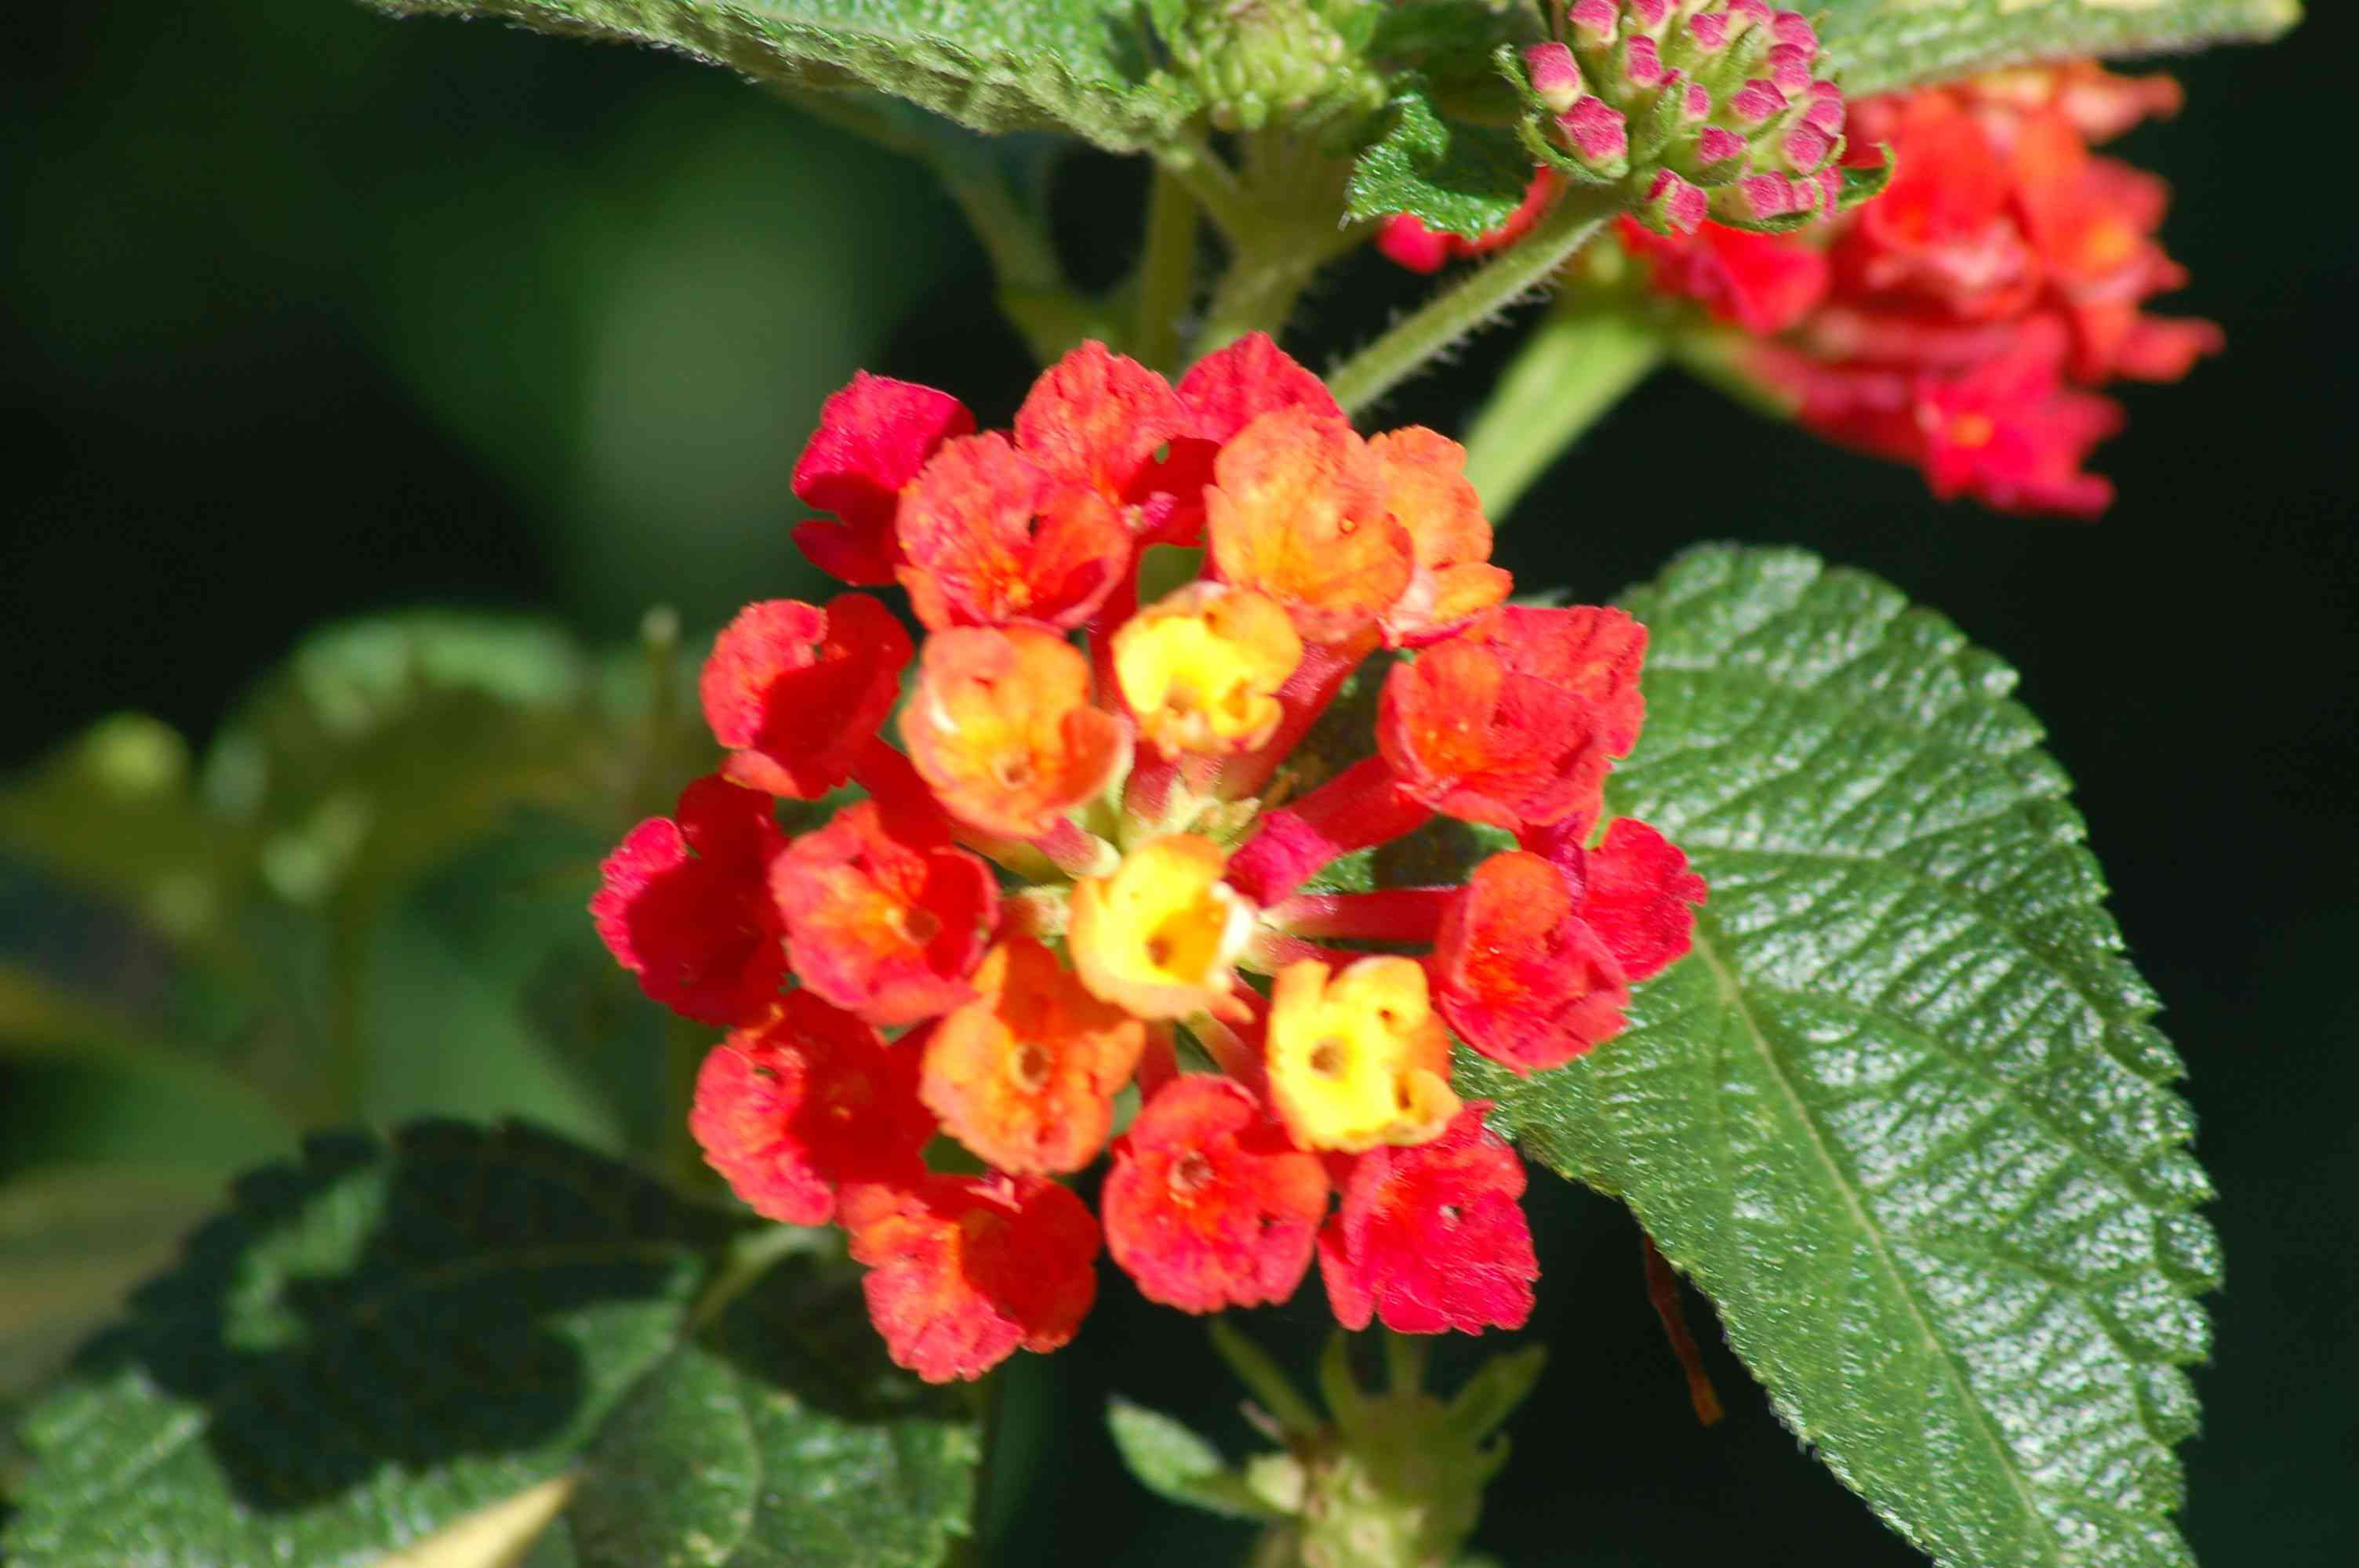 Lantana shrub branch with small red and yellow flower clusters next to leaves closeup